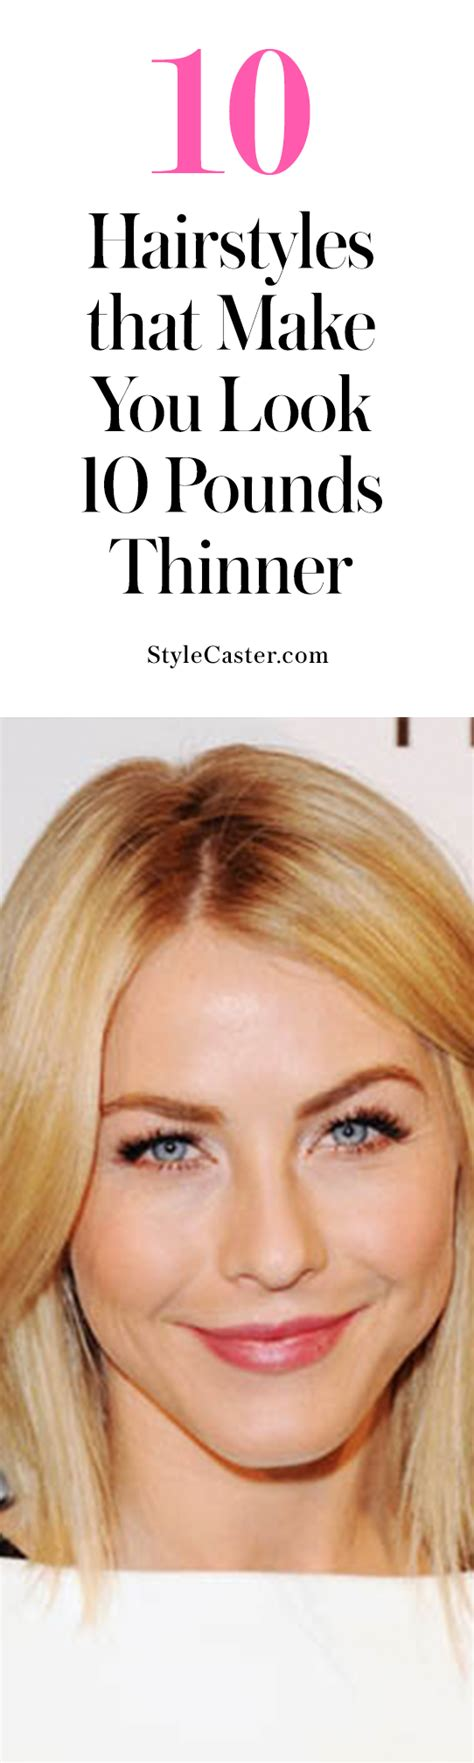 hairstyles      pounds thinner